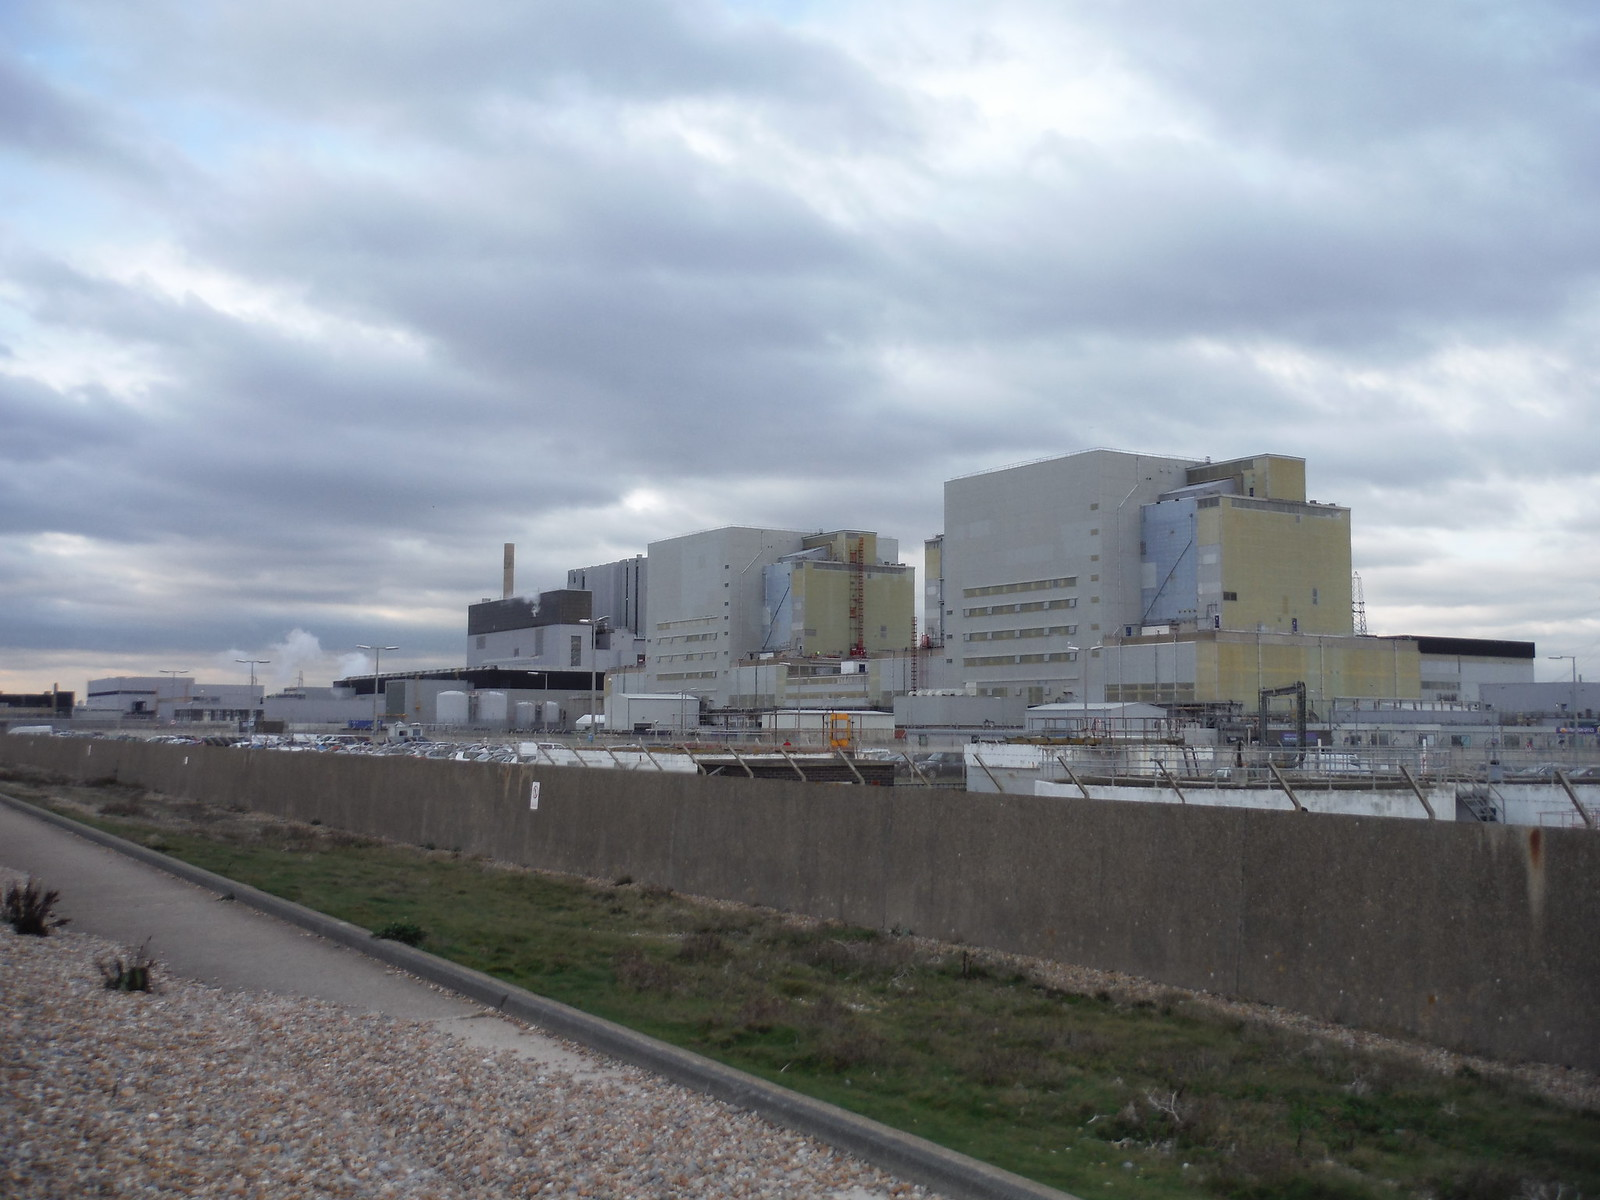 Dungeness Power Plant, from Tsunami Defence Shingle Wall SWC 154 - Rye to Dungeness and Lydd-on-Sea or Lydd or Circular